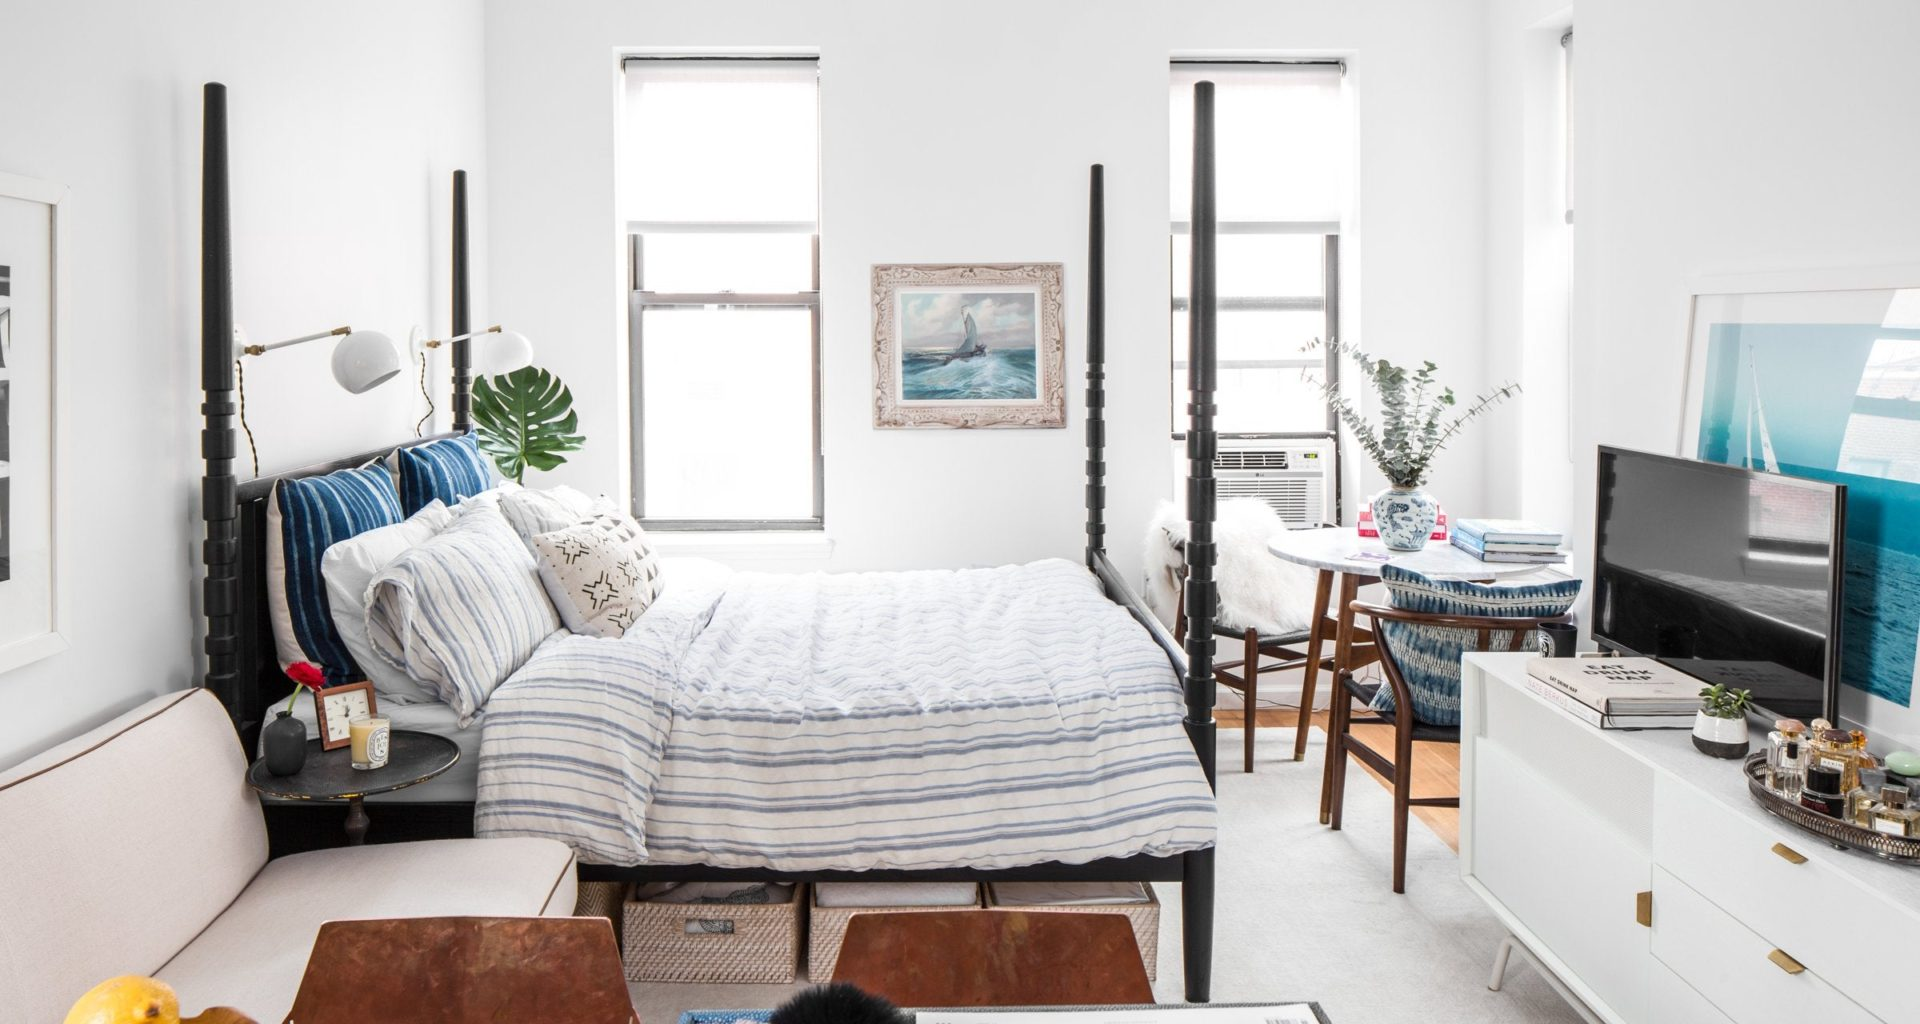 Small Apartment Decorating Ideas & Tips: How to Design Small